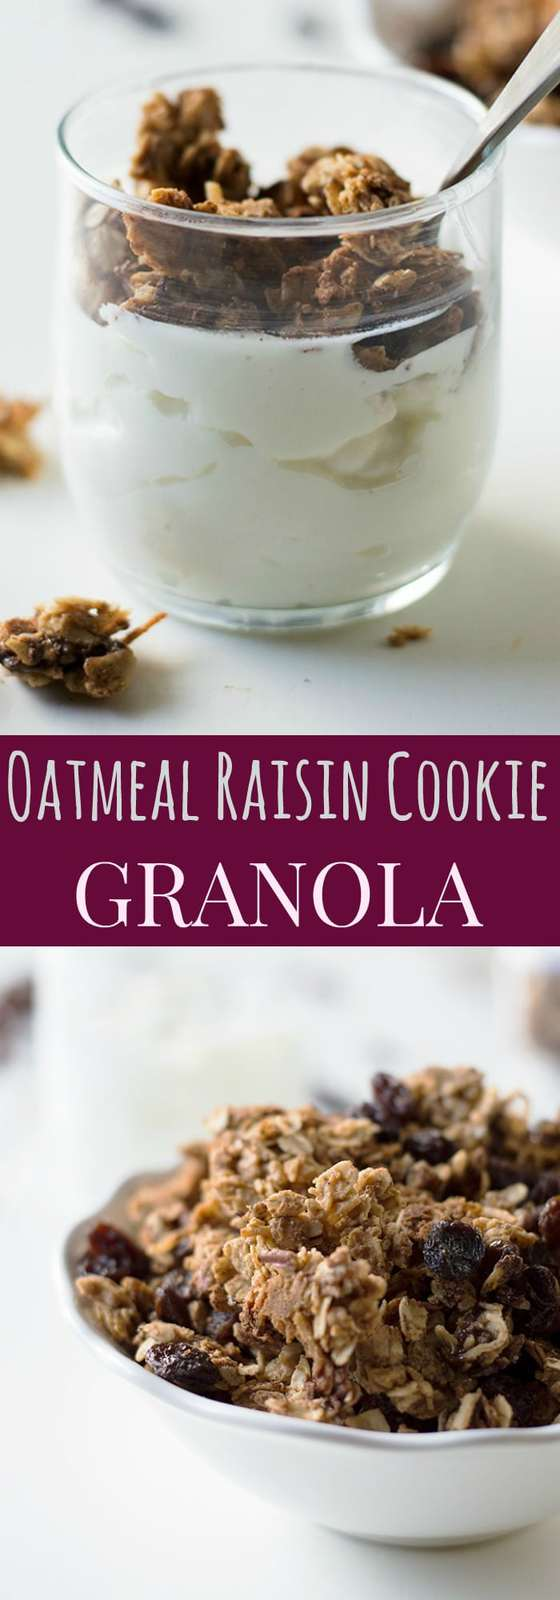 Oatmeal Raisin Cookie Granola - satisfy your sweet tooth with a healthy snack that tastes just like oatmeal raisin cookies. Gluten free and vegan recipe options. | cupcakesandkalechips.com